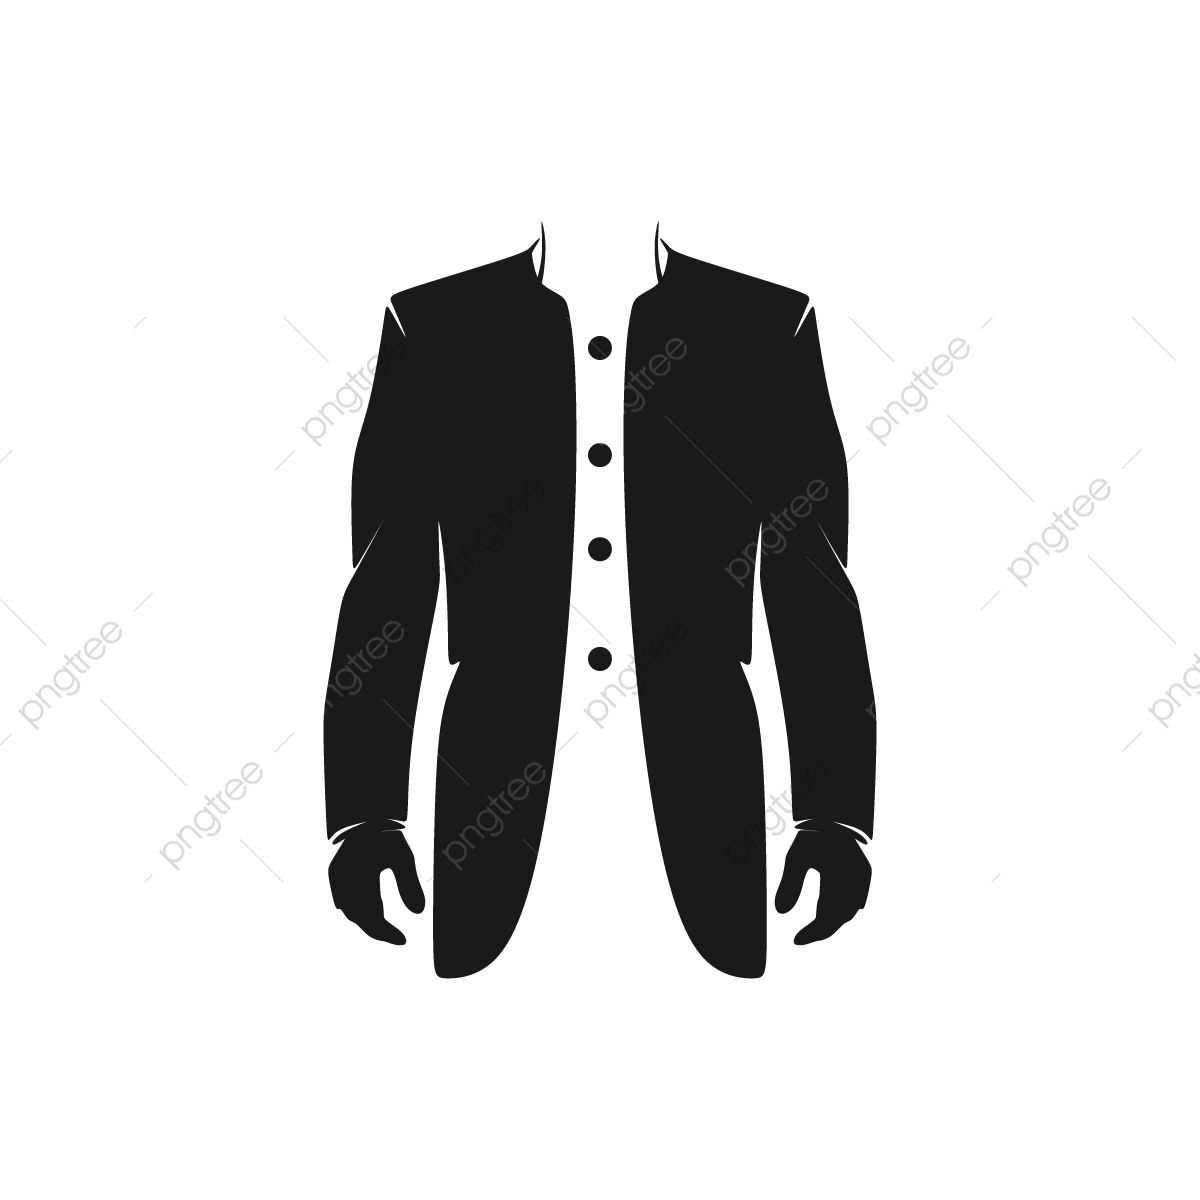 suit png images vector and psd files free download on pngtree https pngtree com freepng suit clothing store logo design inspiration 3644596 html